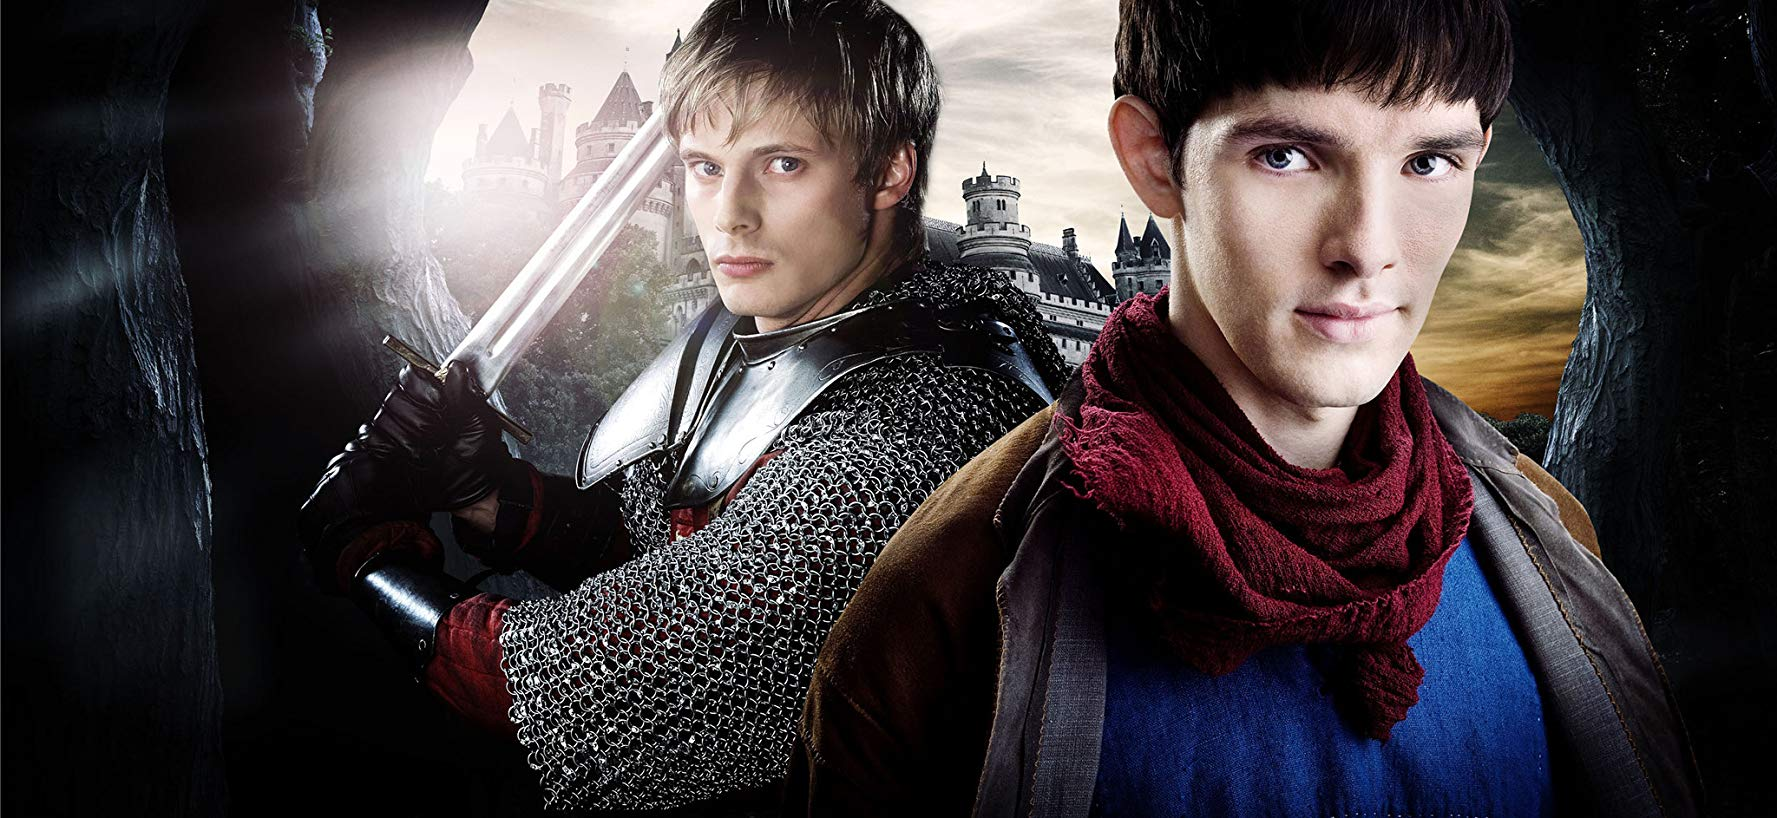 The BBC promotional image for Merlin showcases how important the Merthur dynamic is to the show.